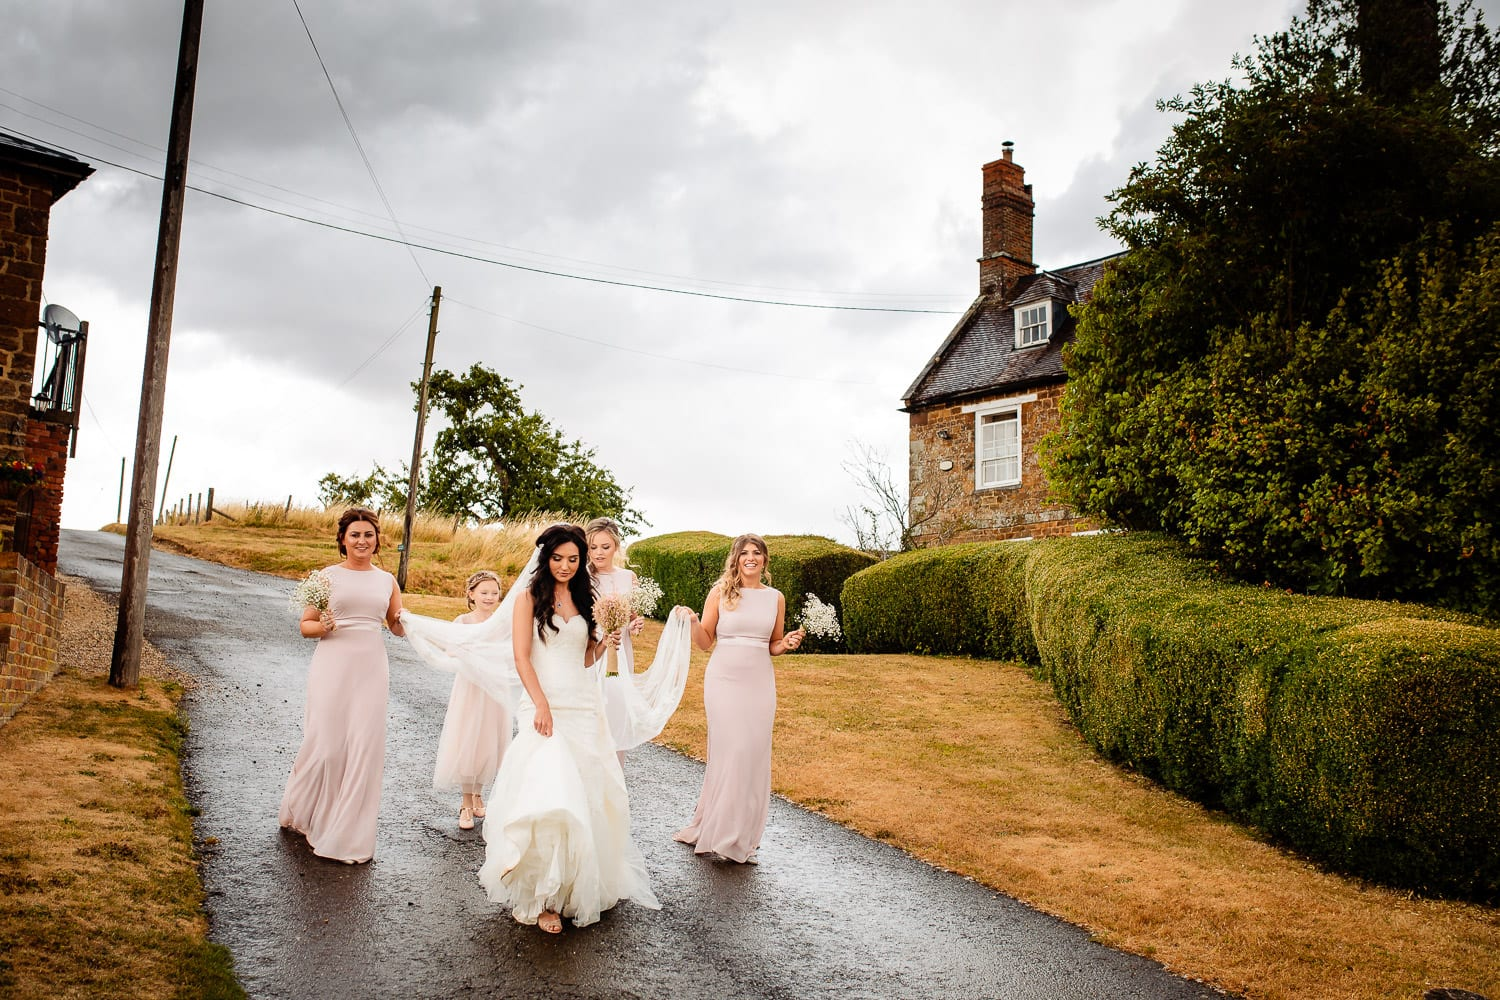 northamptonshire wedding photography at The Granary at Fawsley Wedding hotel